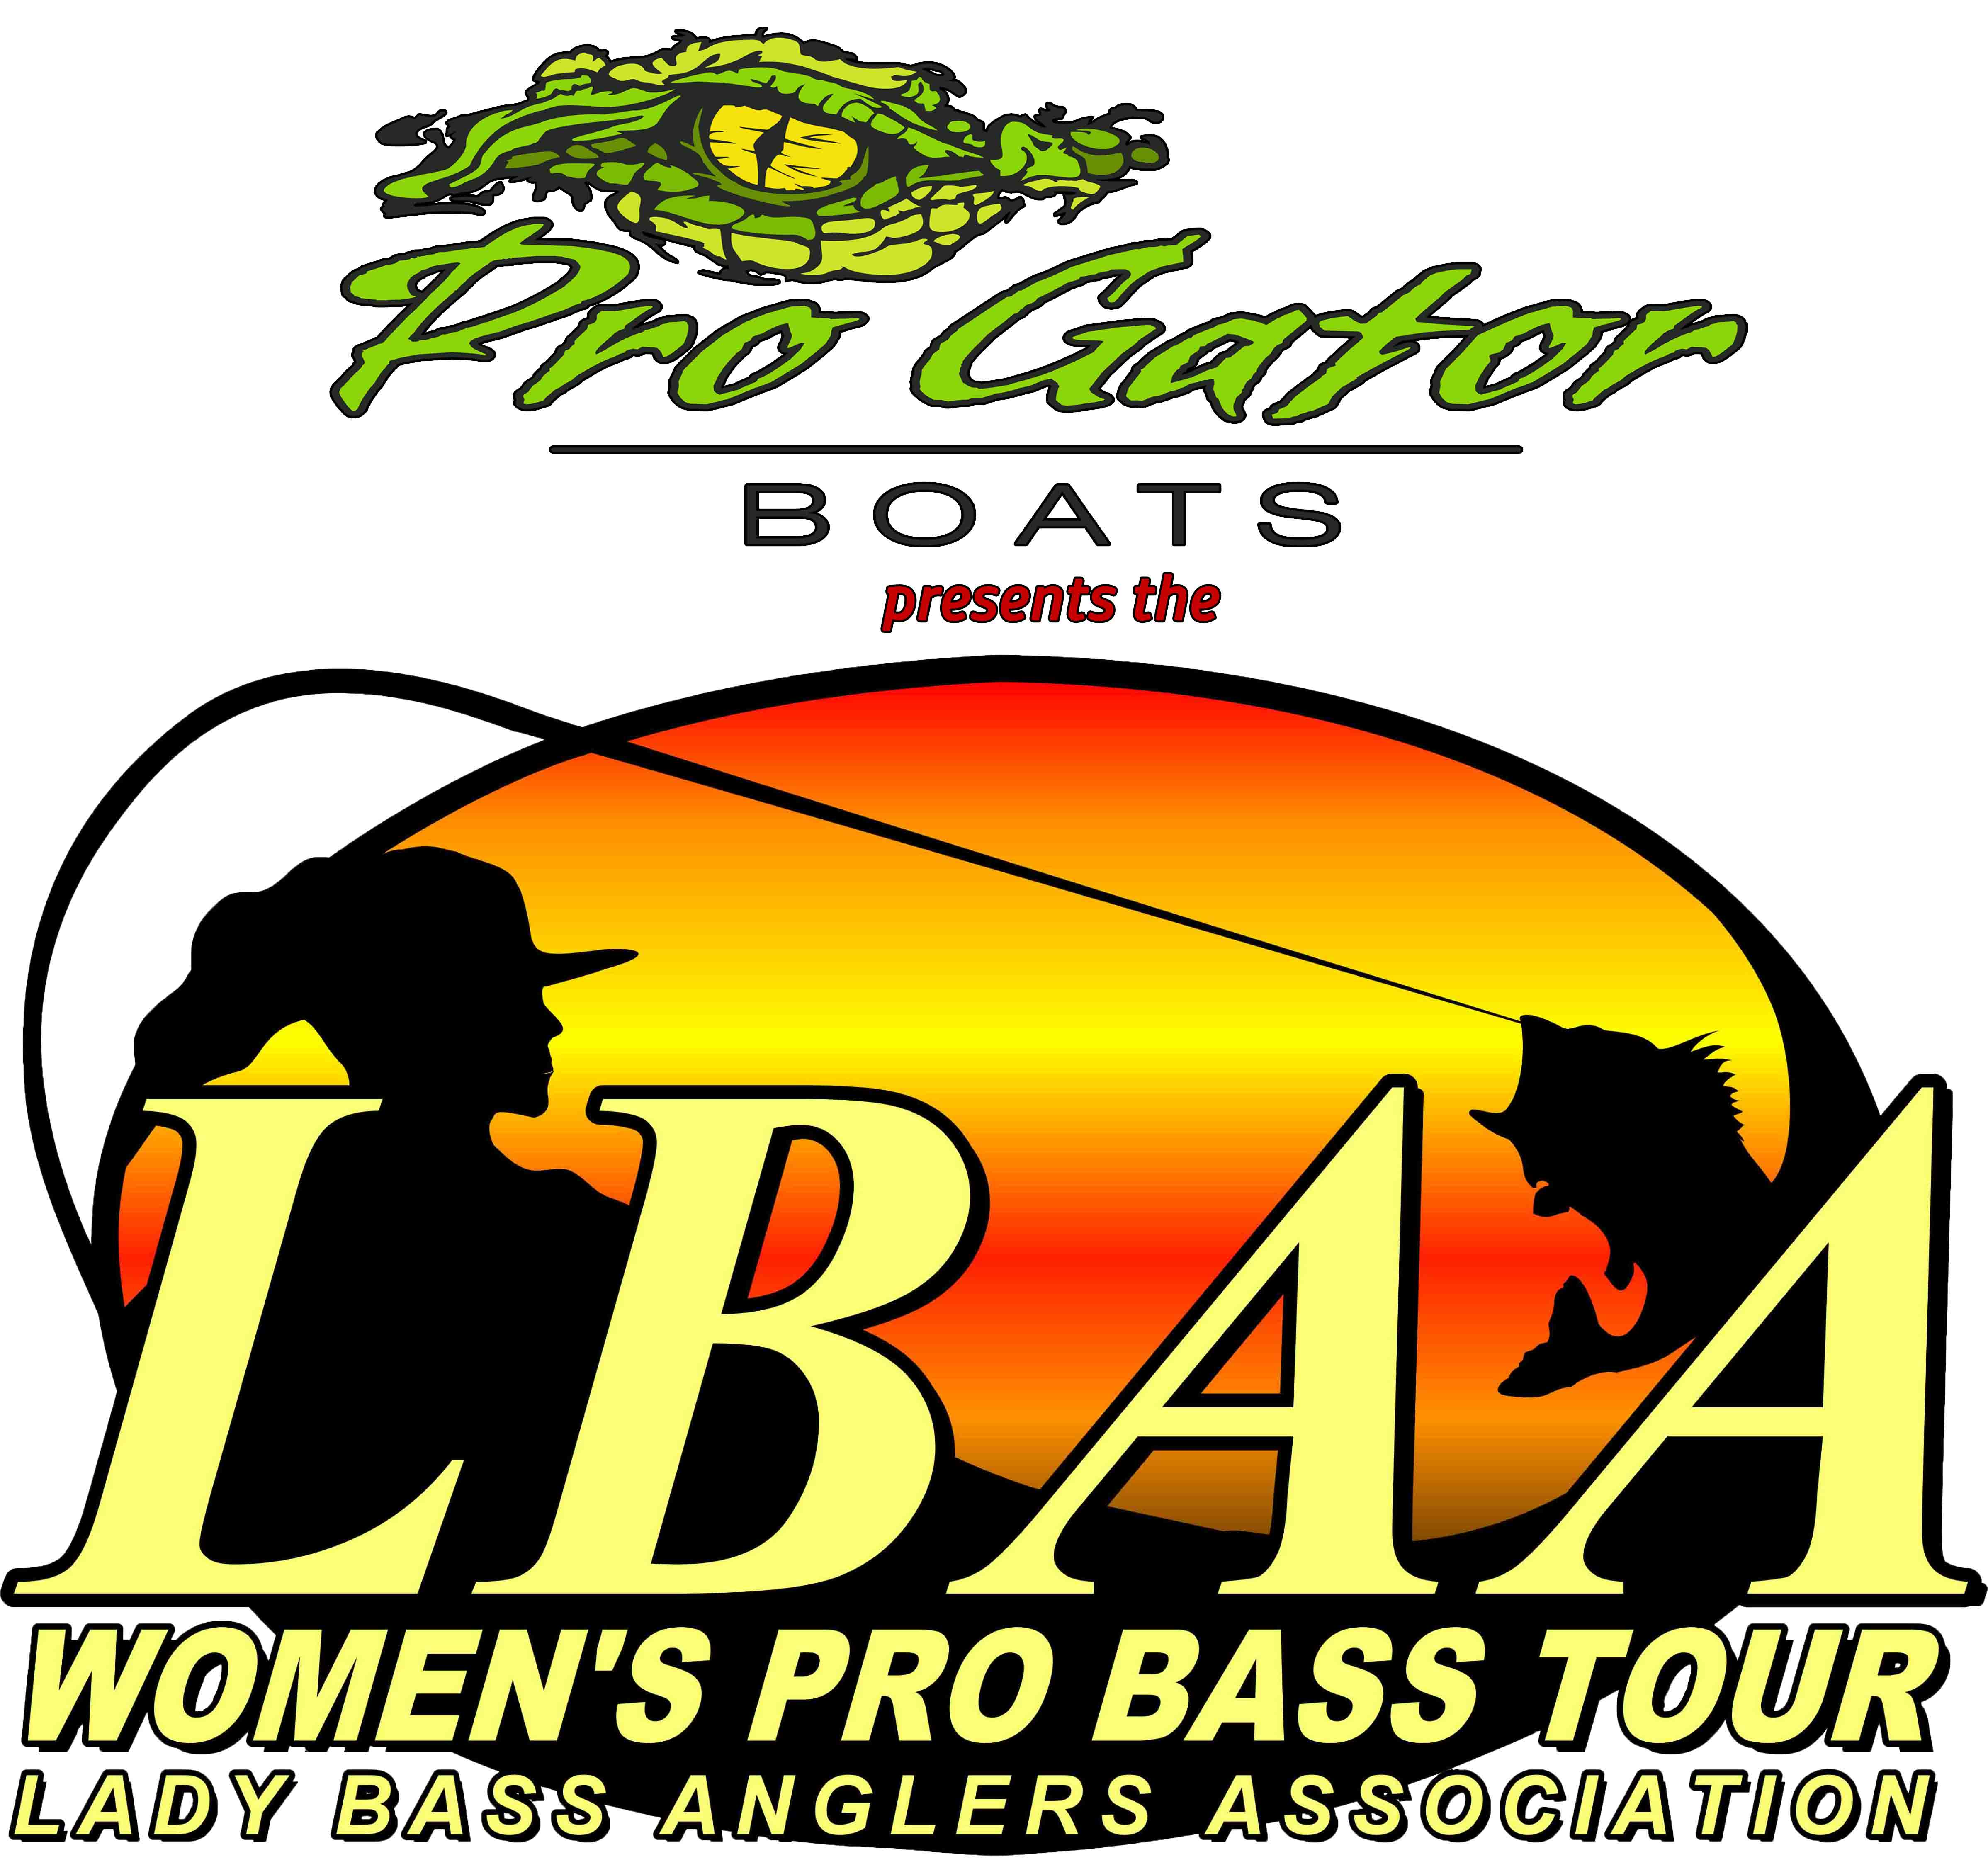 Pro Gator Boats Presents the Lady Bass Anglers Association